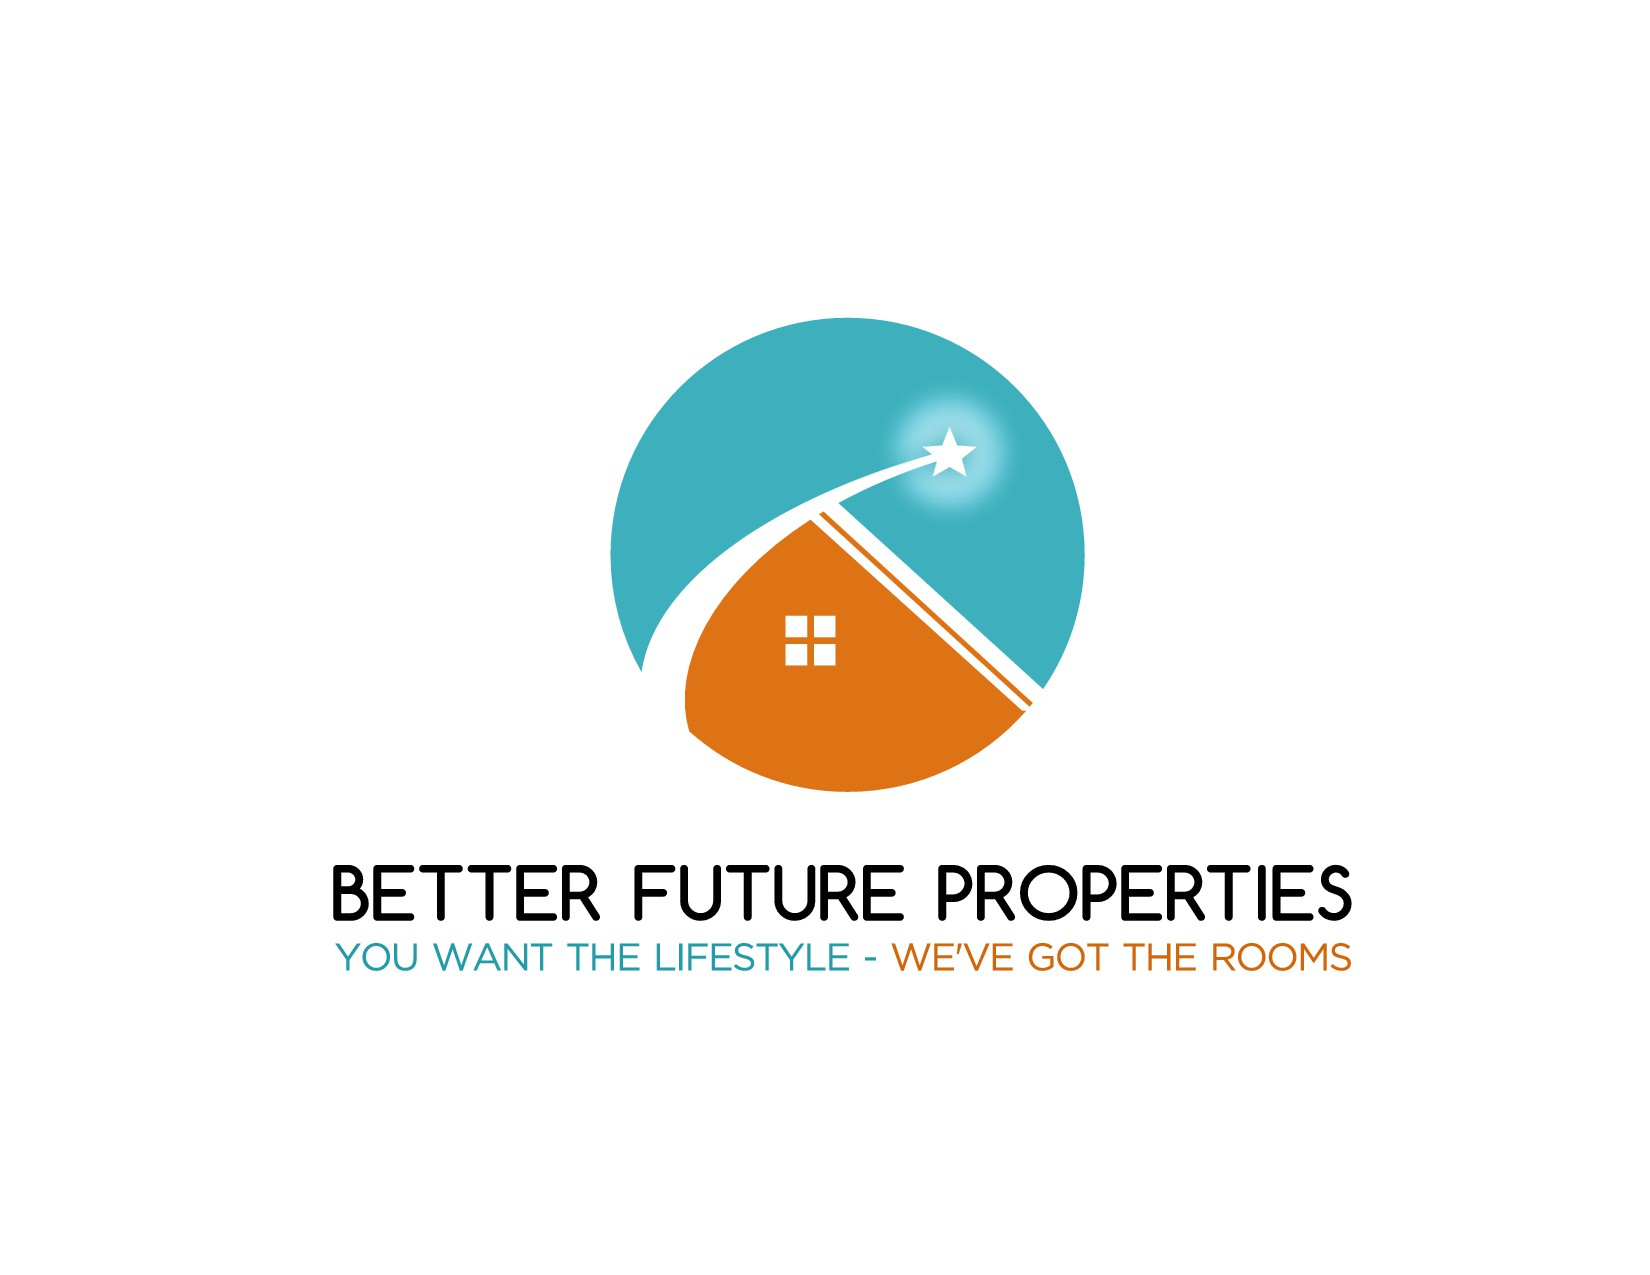 Cool emotive logo needed for Better Future Property